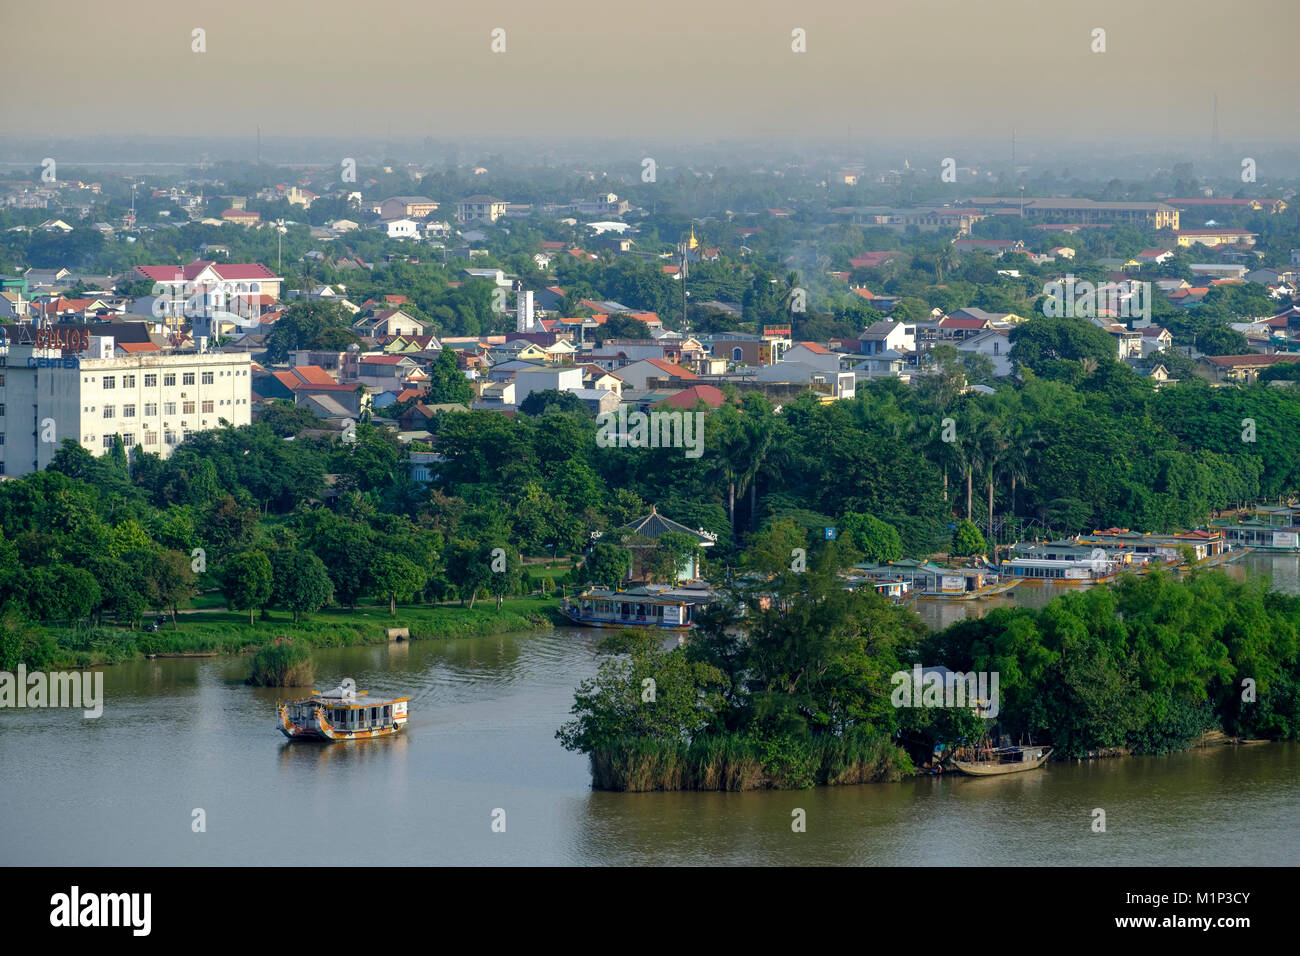 A view of the Perfume River and skyline of the city of Hue, Vietnam, Indochina, Southeast Asia, Asia - Stock Image